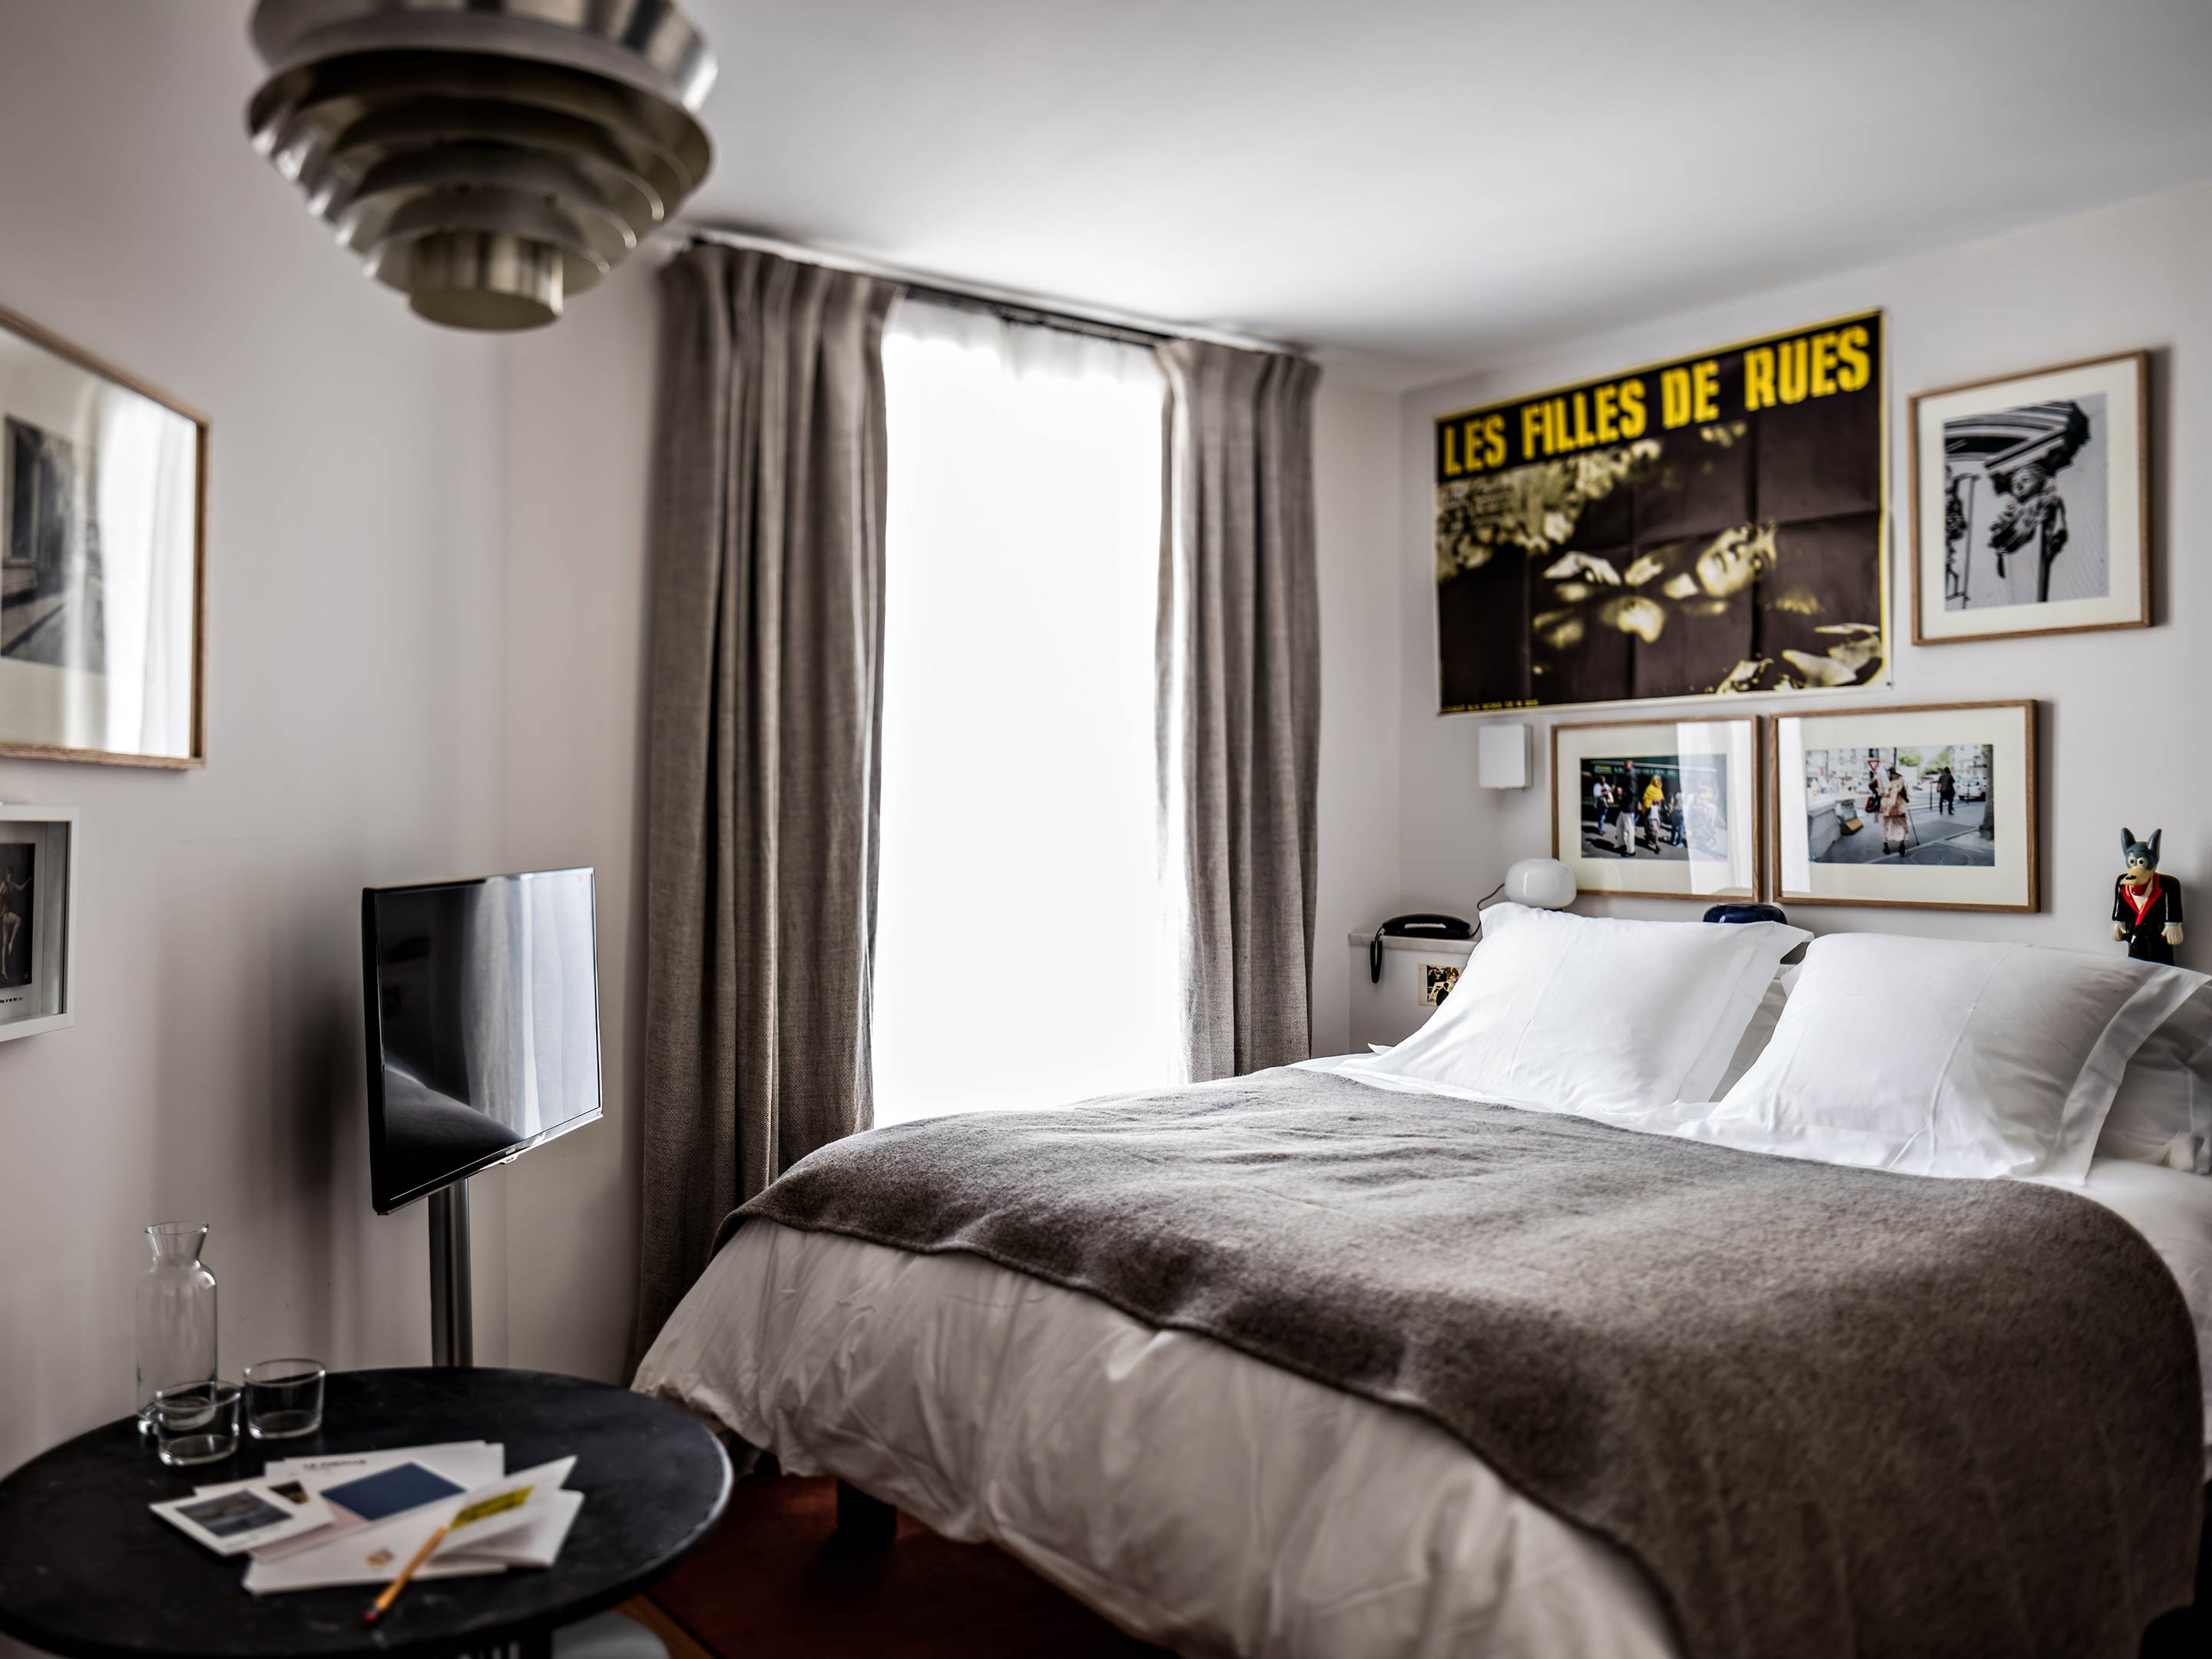 Rooms suites at le pigalle in paris france design hotels for Hotel design france